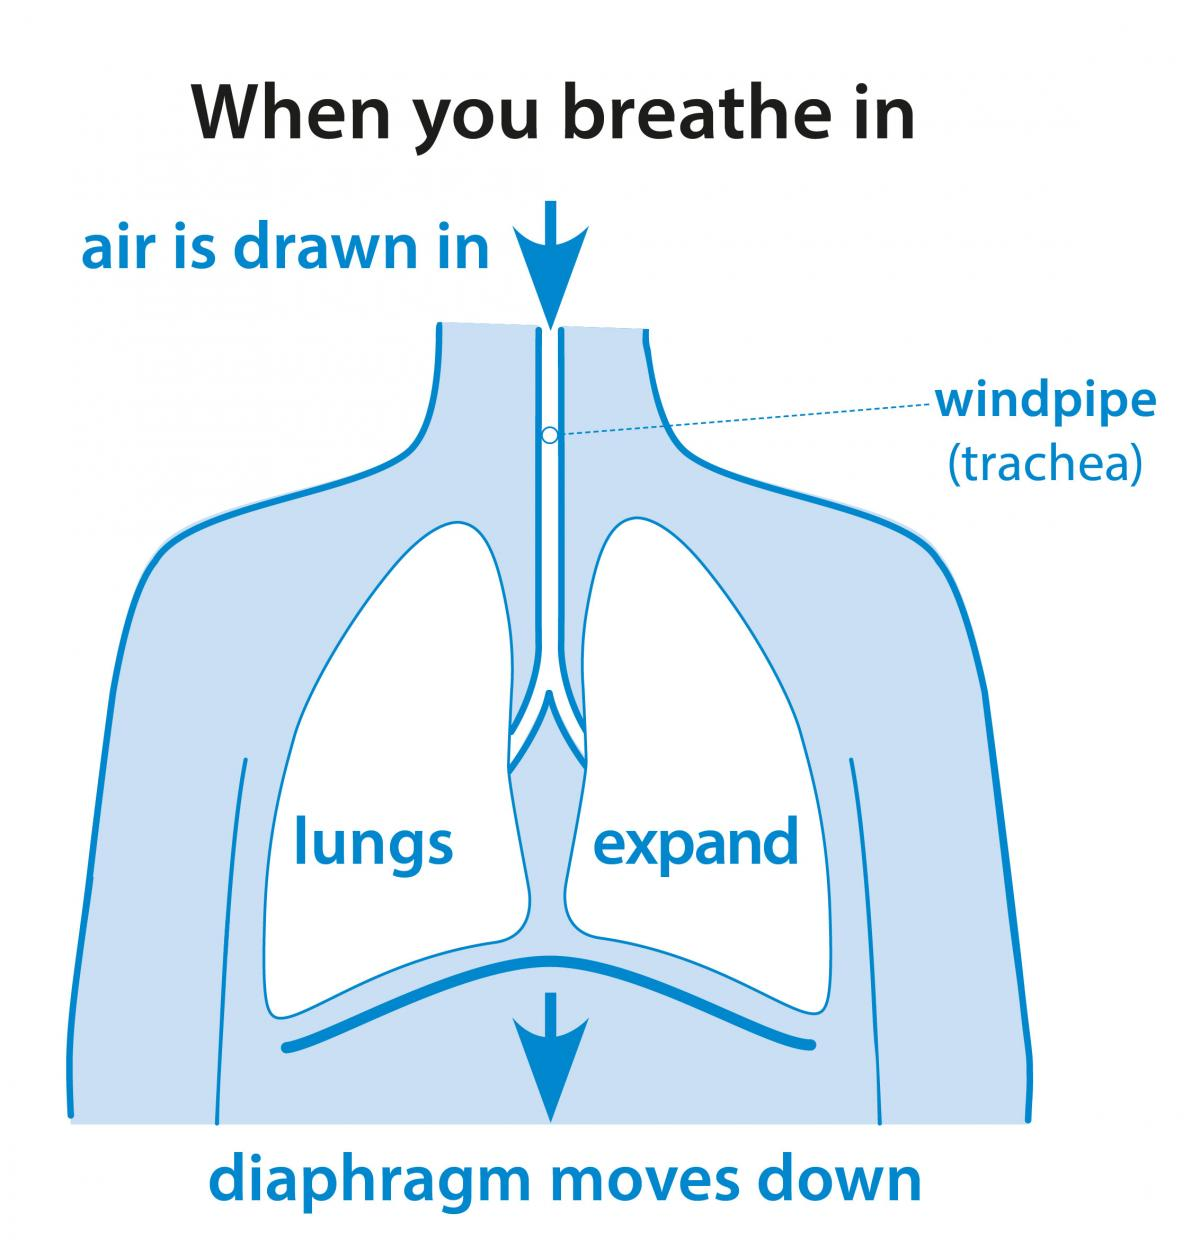 medium resolution of healthy lung tissue is springy and elastic so your muscles need to work to expand your chest and draw air into your lungs